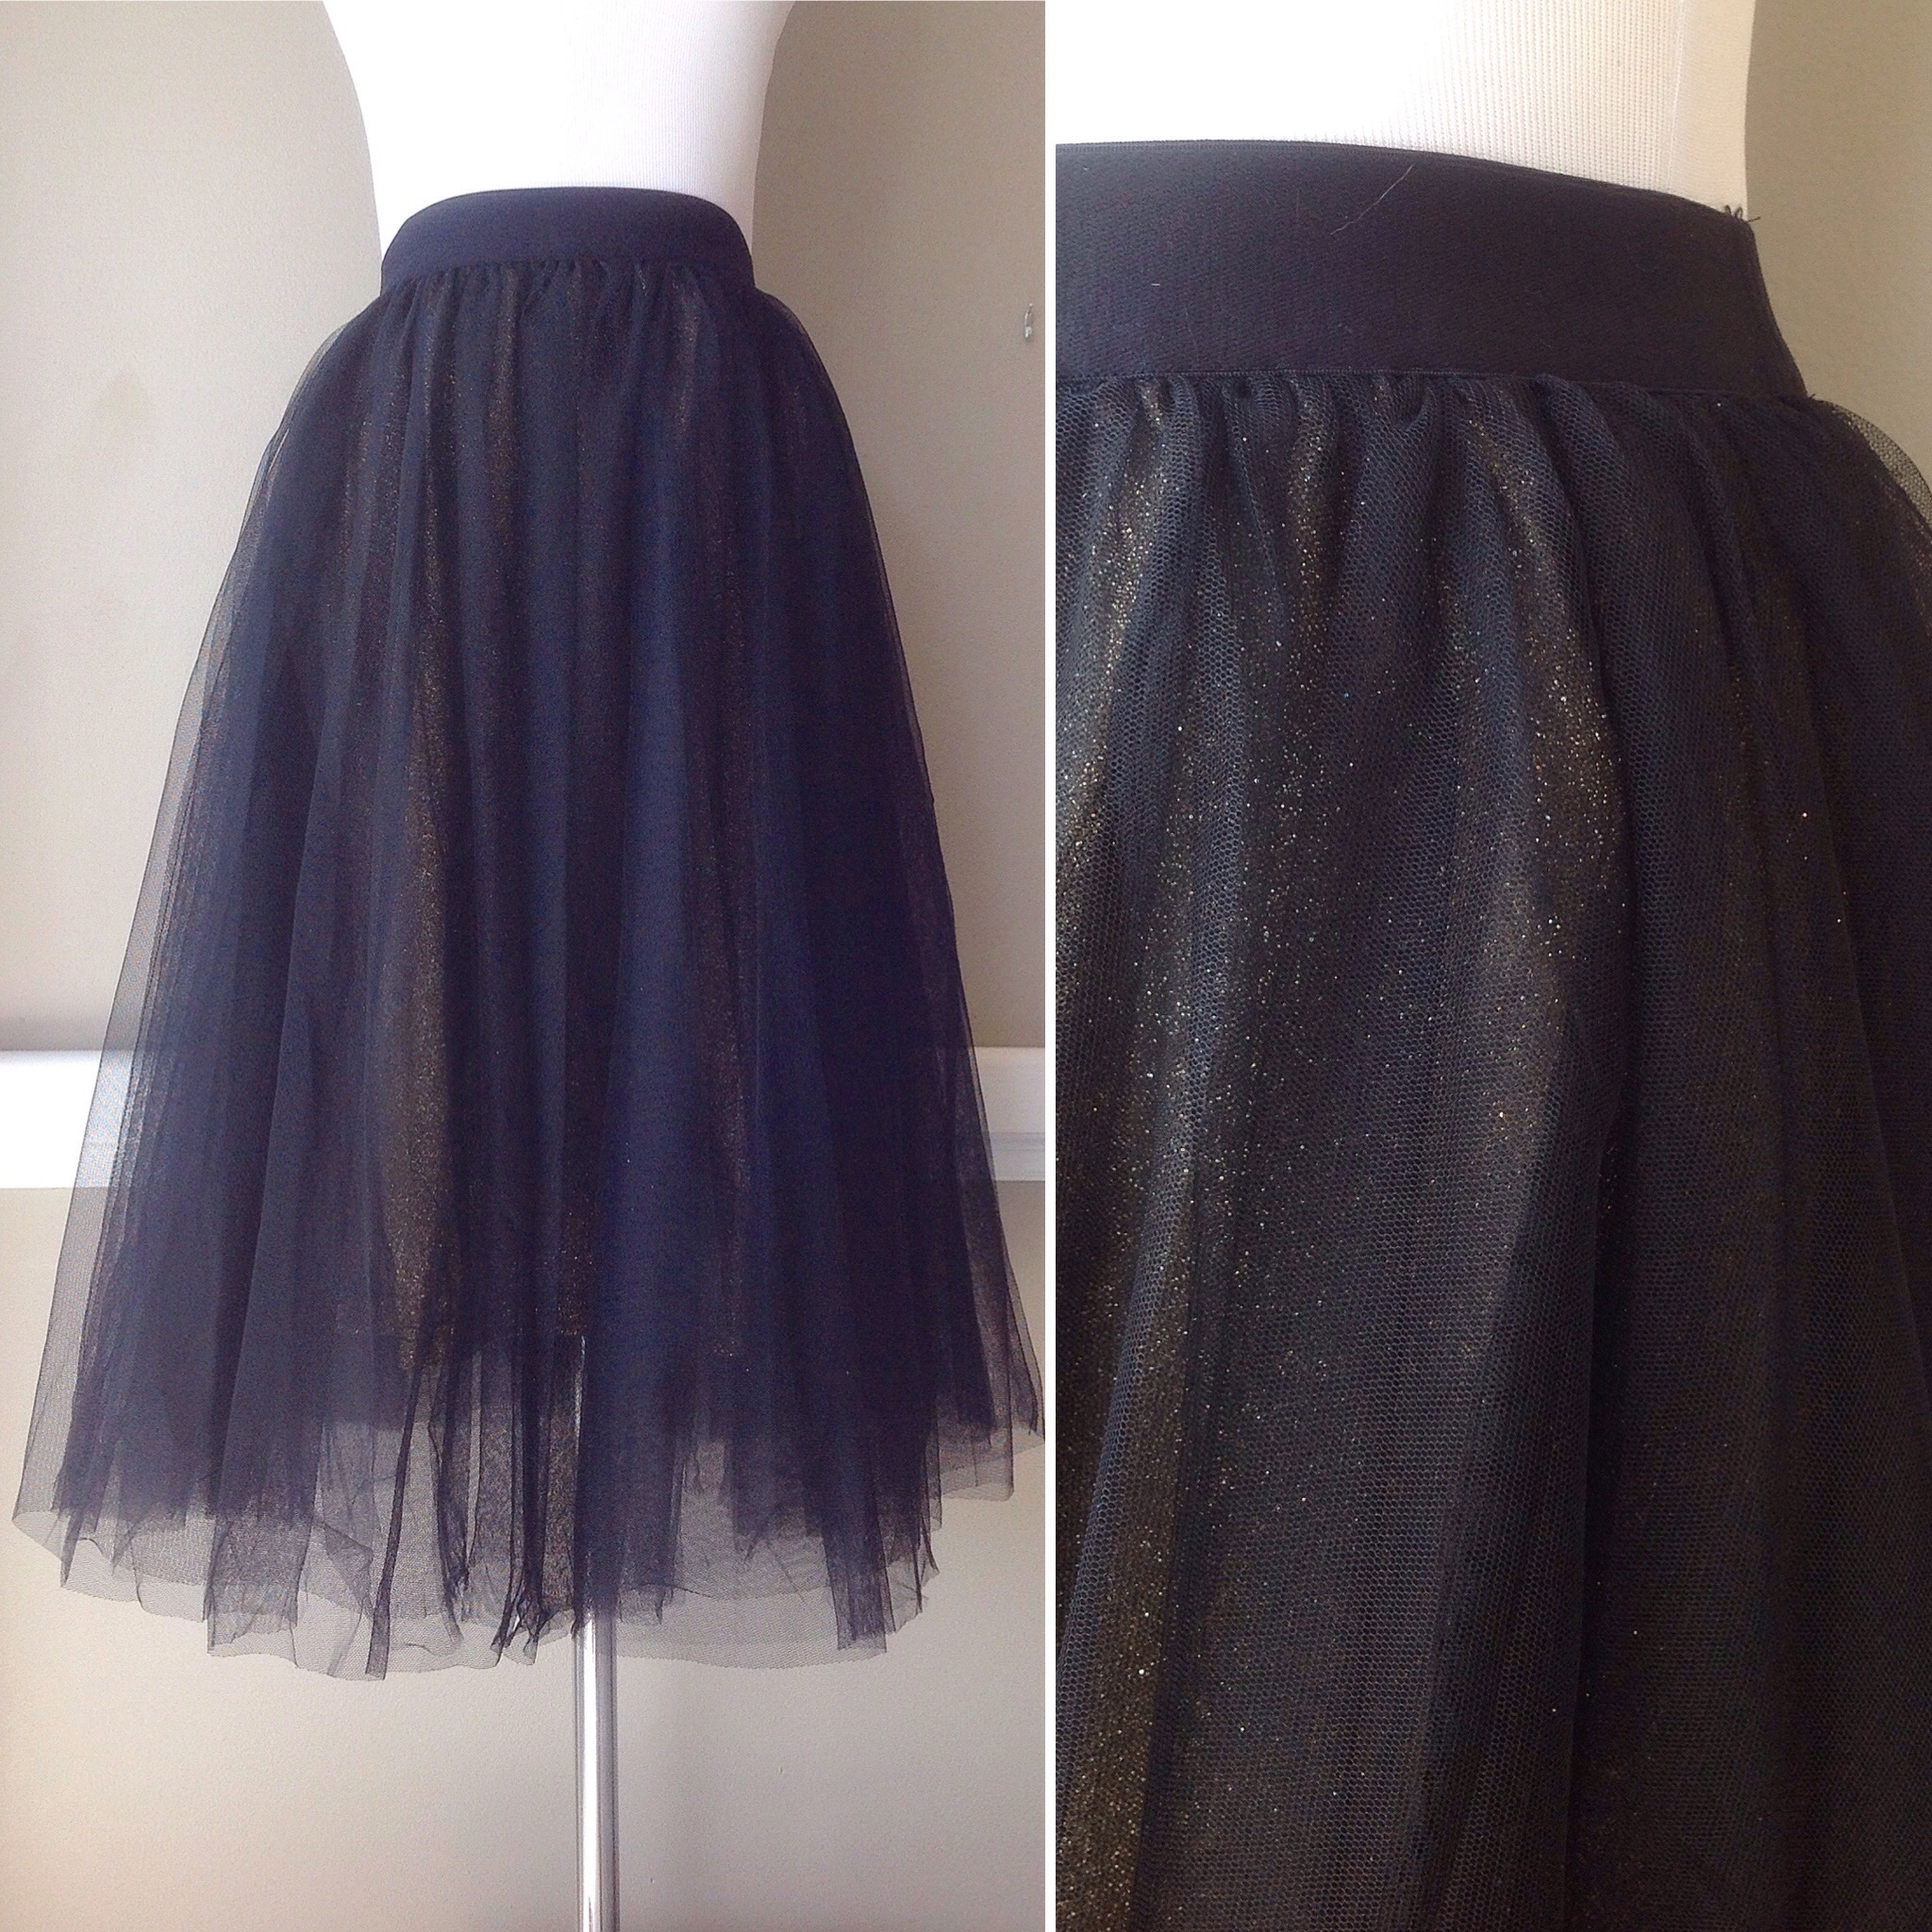 Tulle midi skirt with gold shimmer underskirt , $48